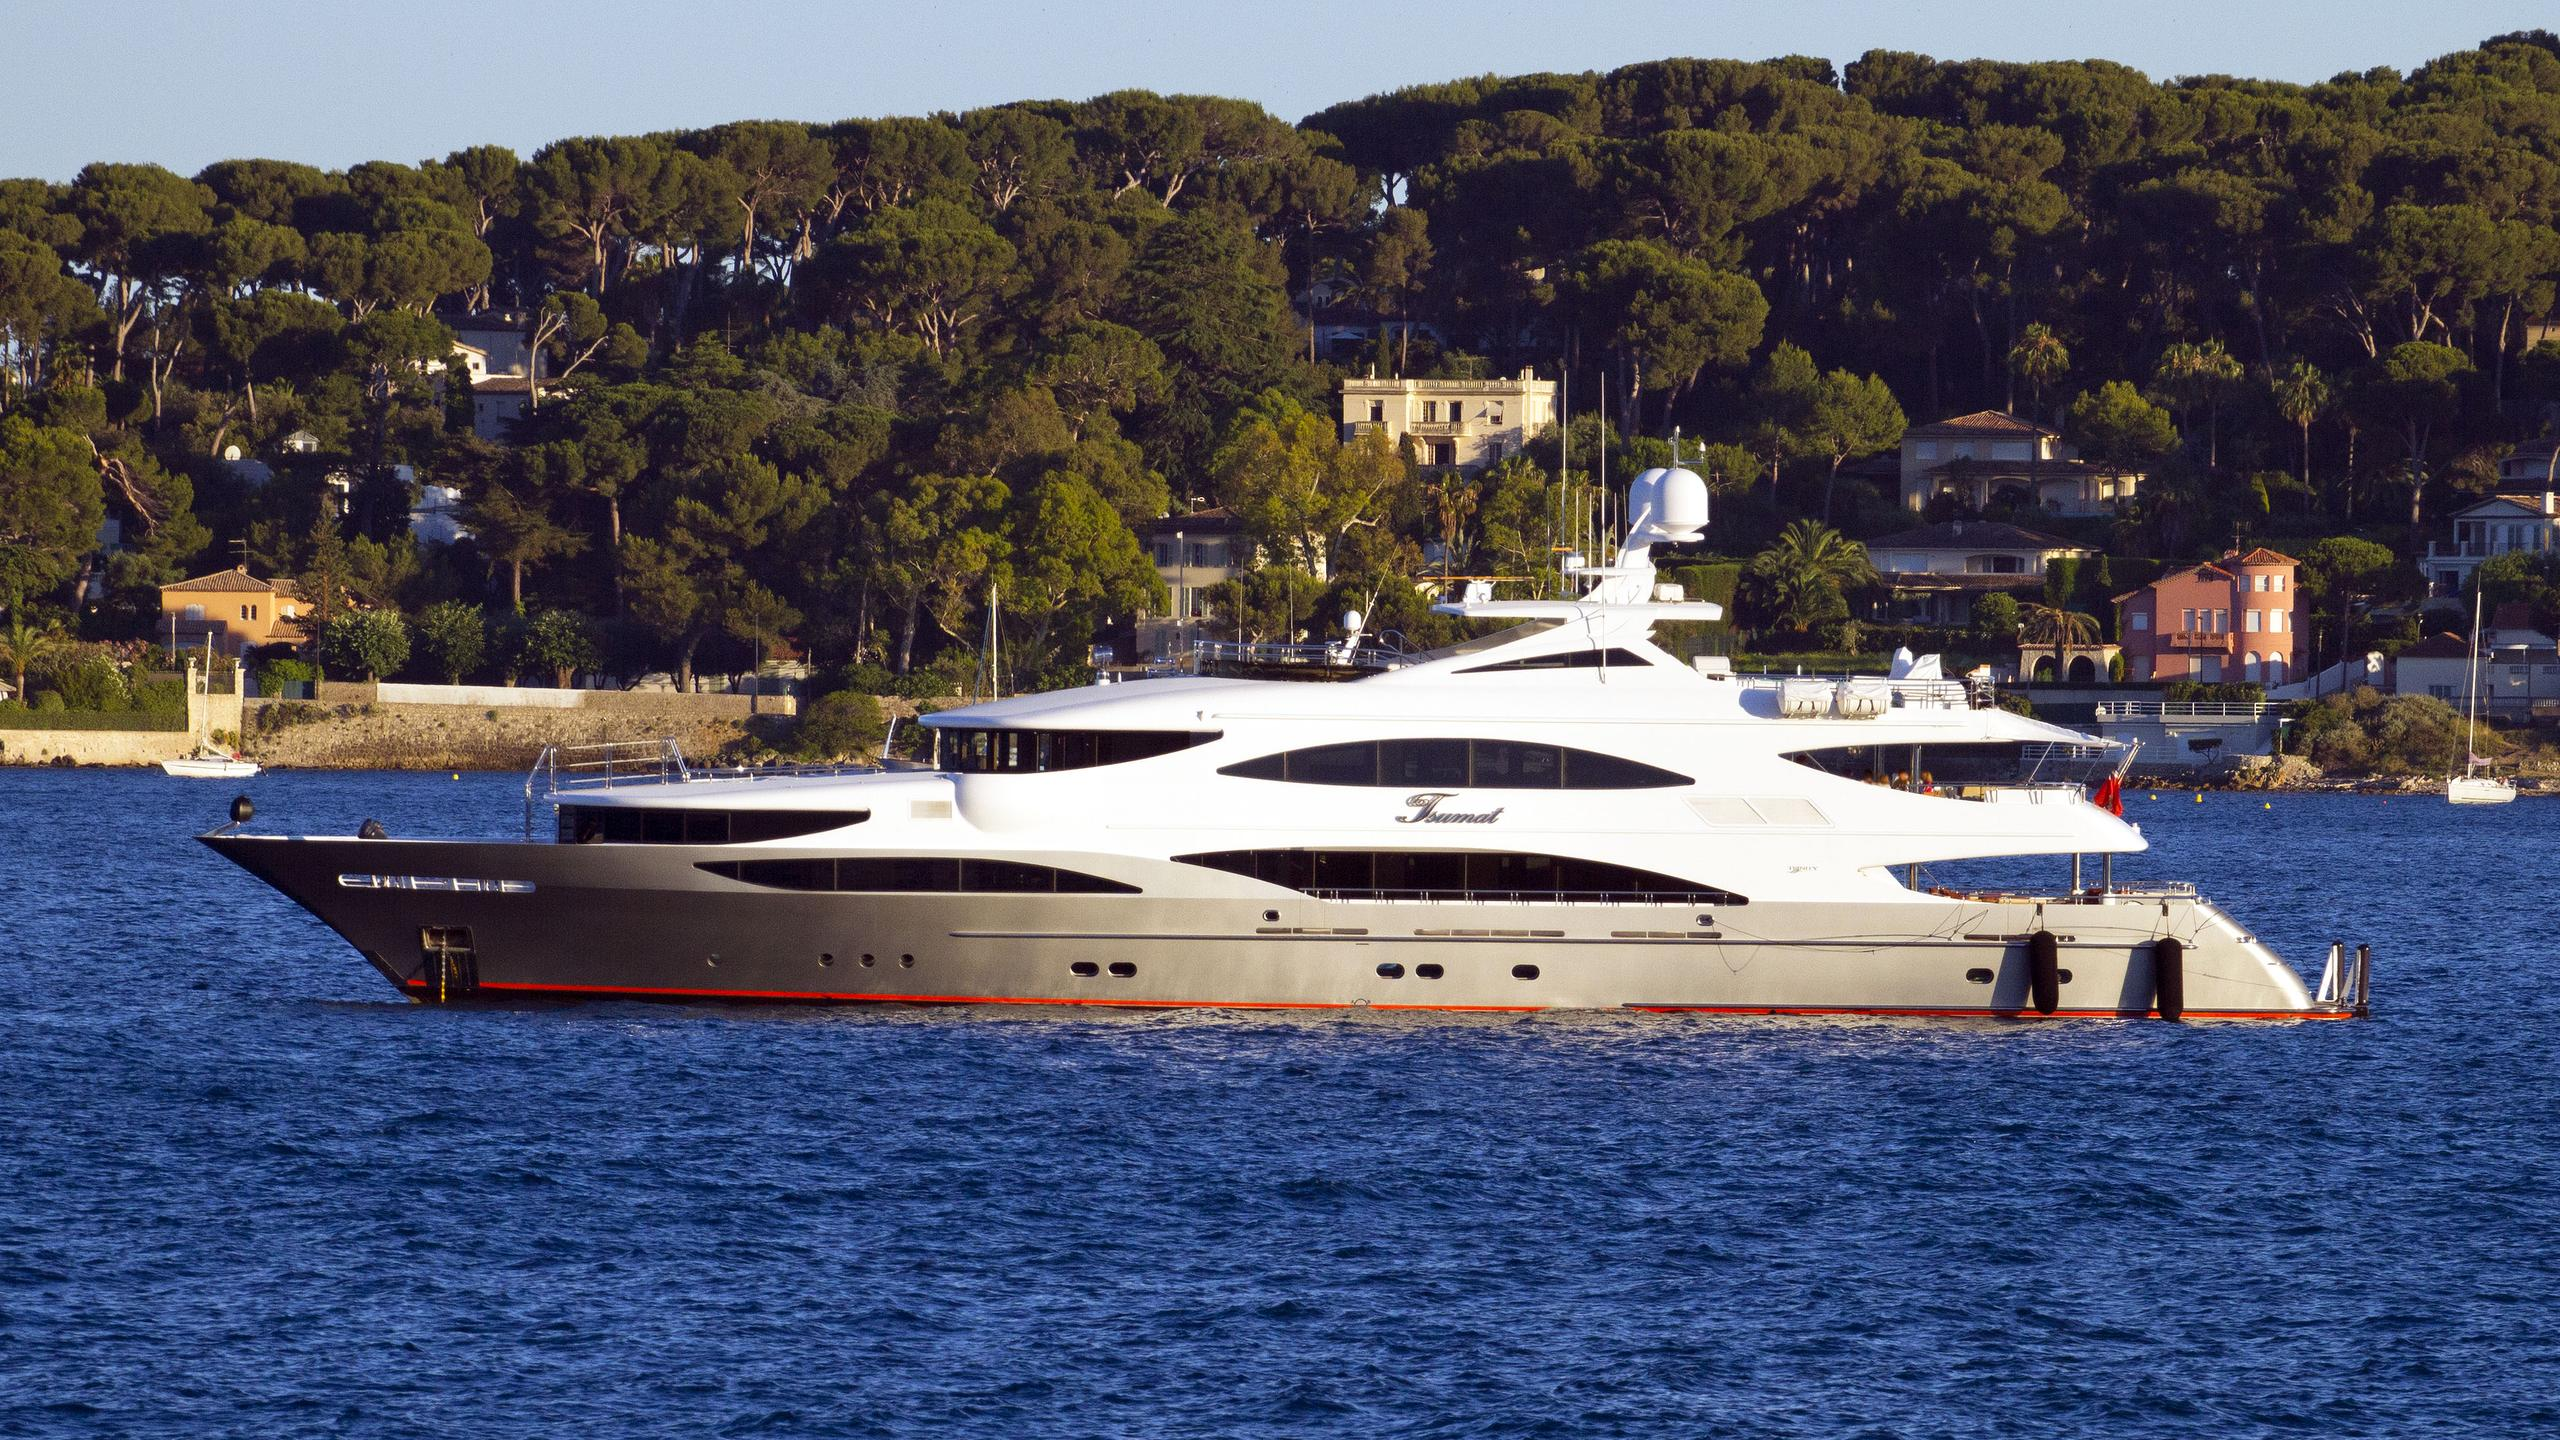 TSUMAT-motor-yacht-trinity-164-2012-50m-profile-anchored